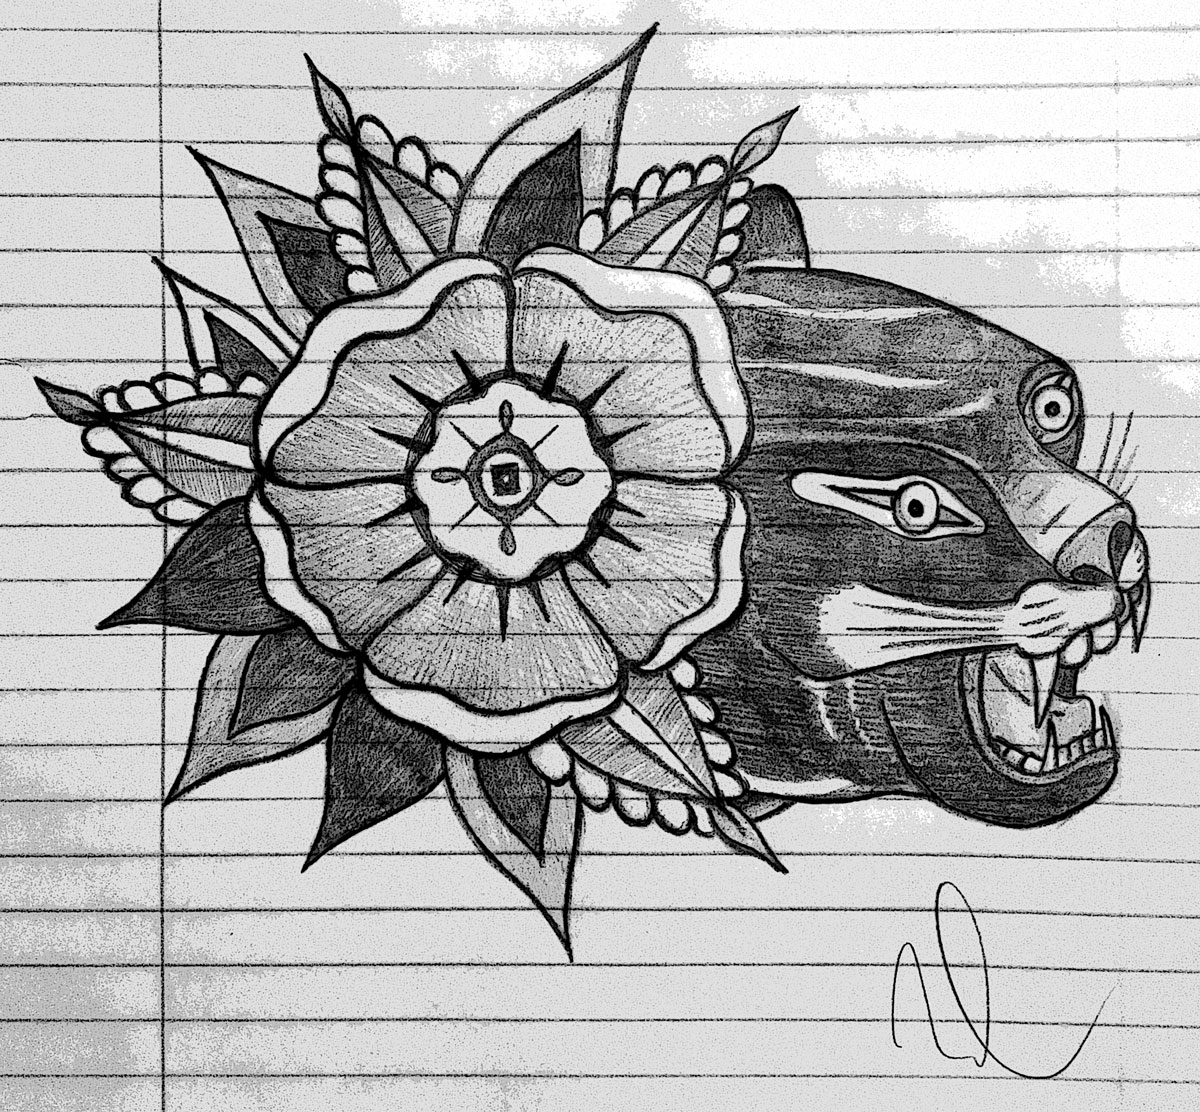 Pencil sketch of a panther with flower tattoo by Noah Watson